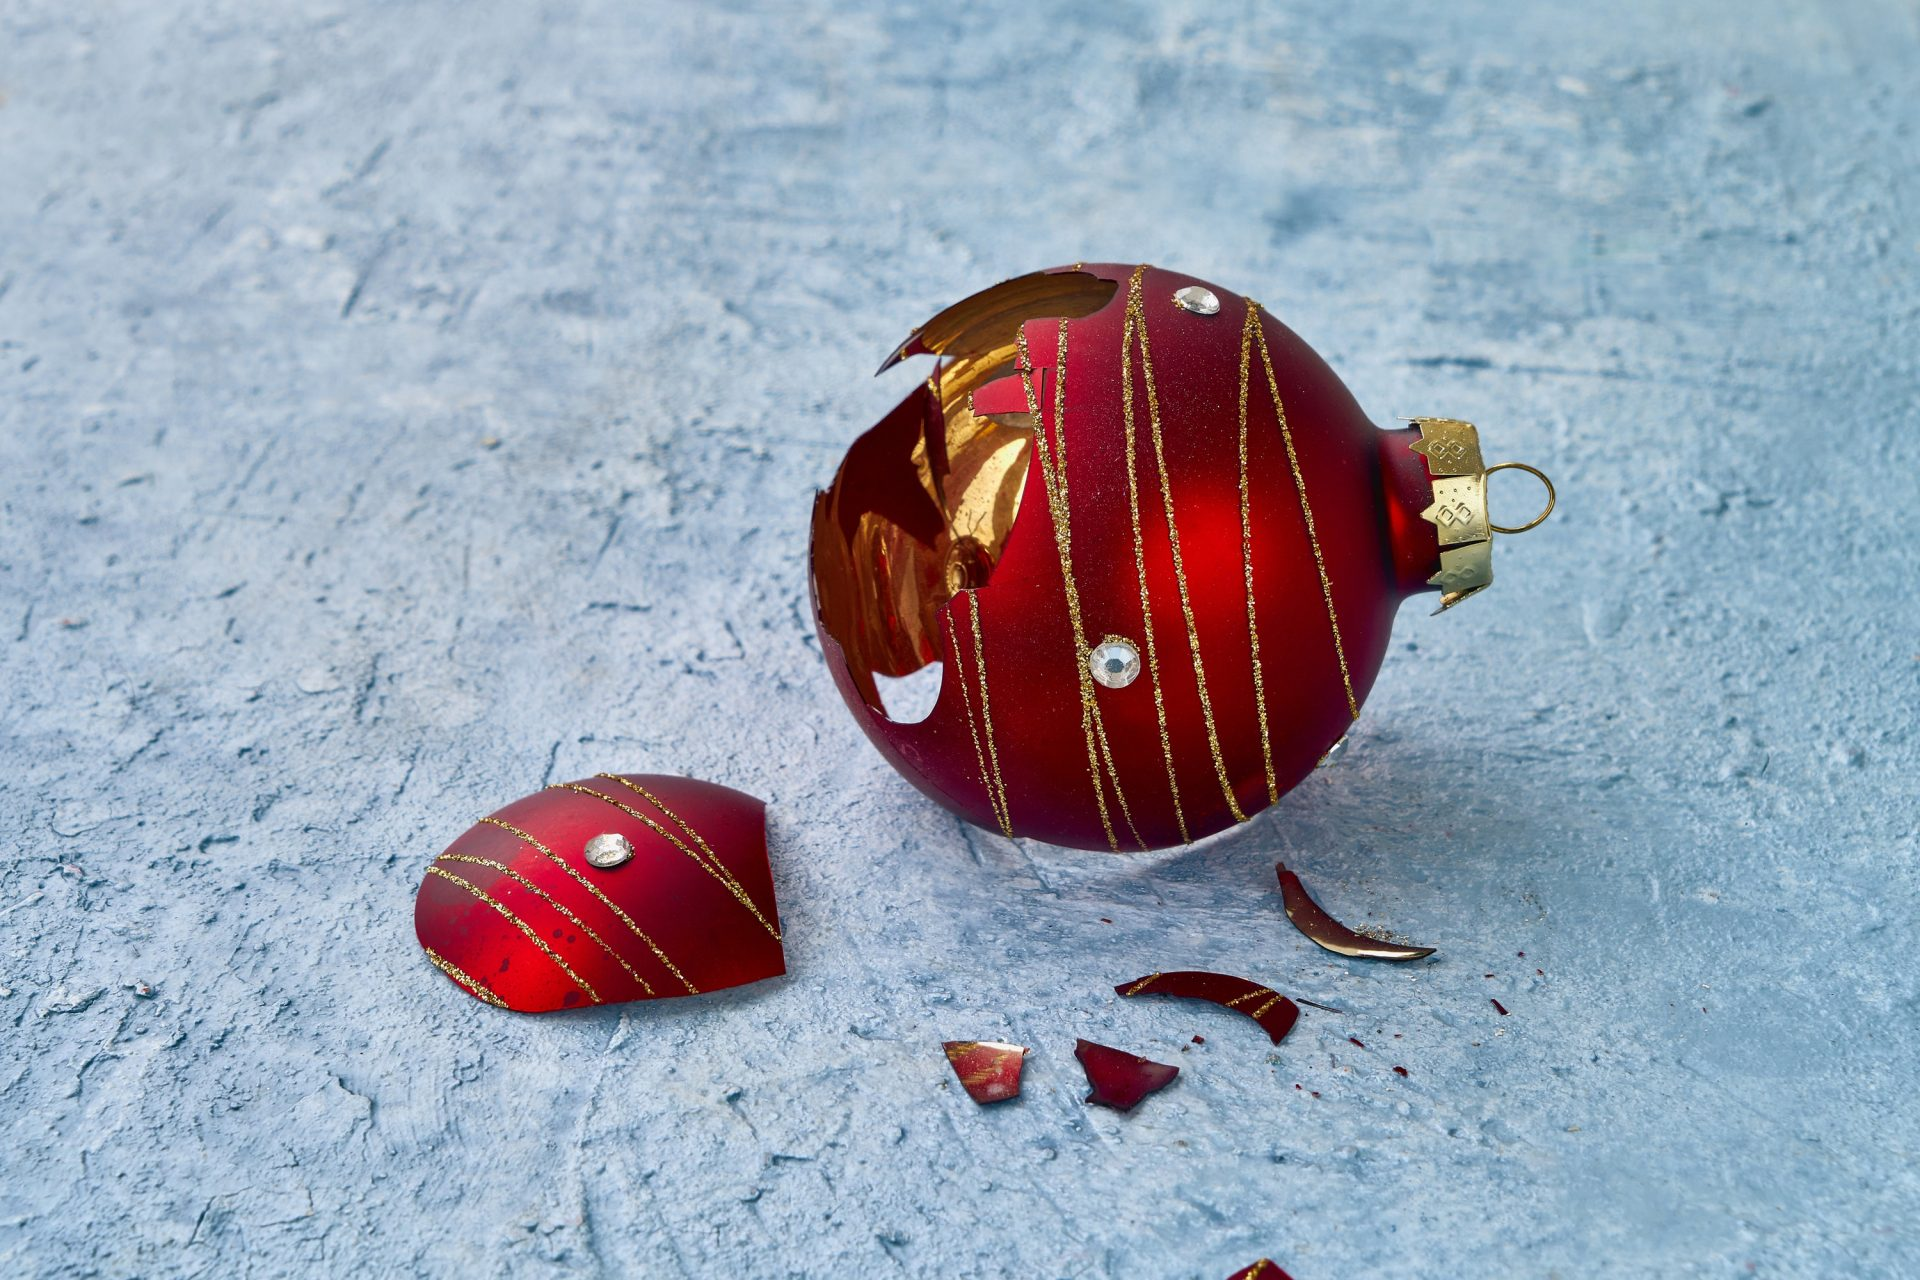 Don't let accidents ruin your Christmas: six common festive mishaps and how to treat them